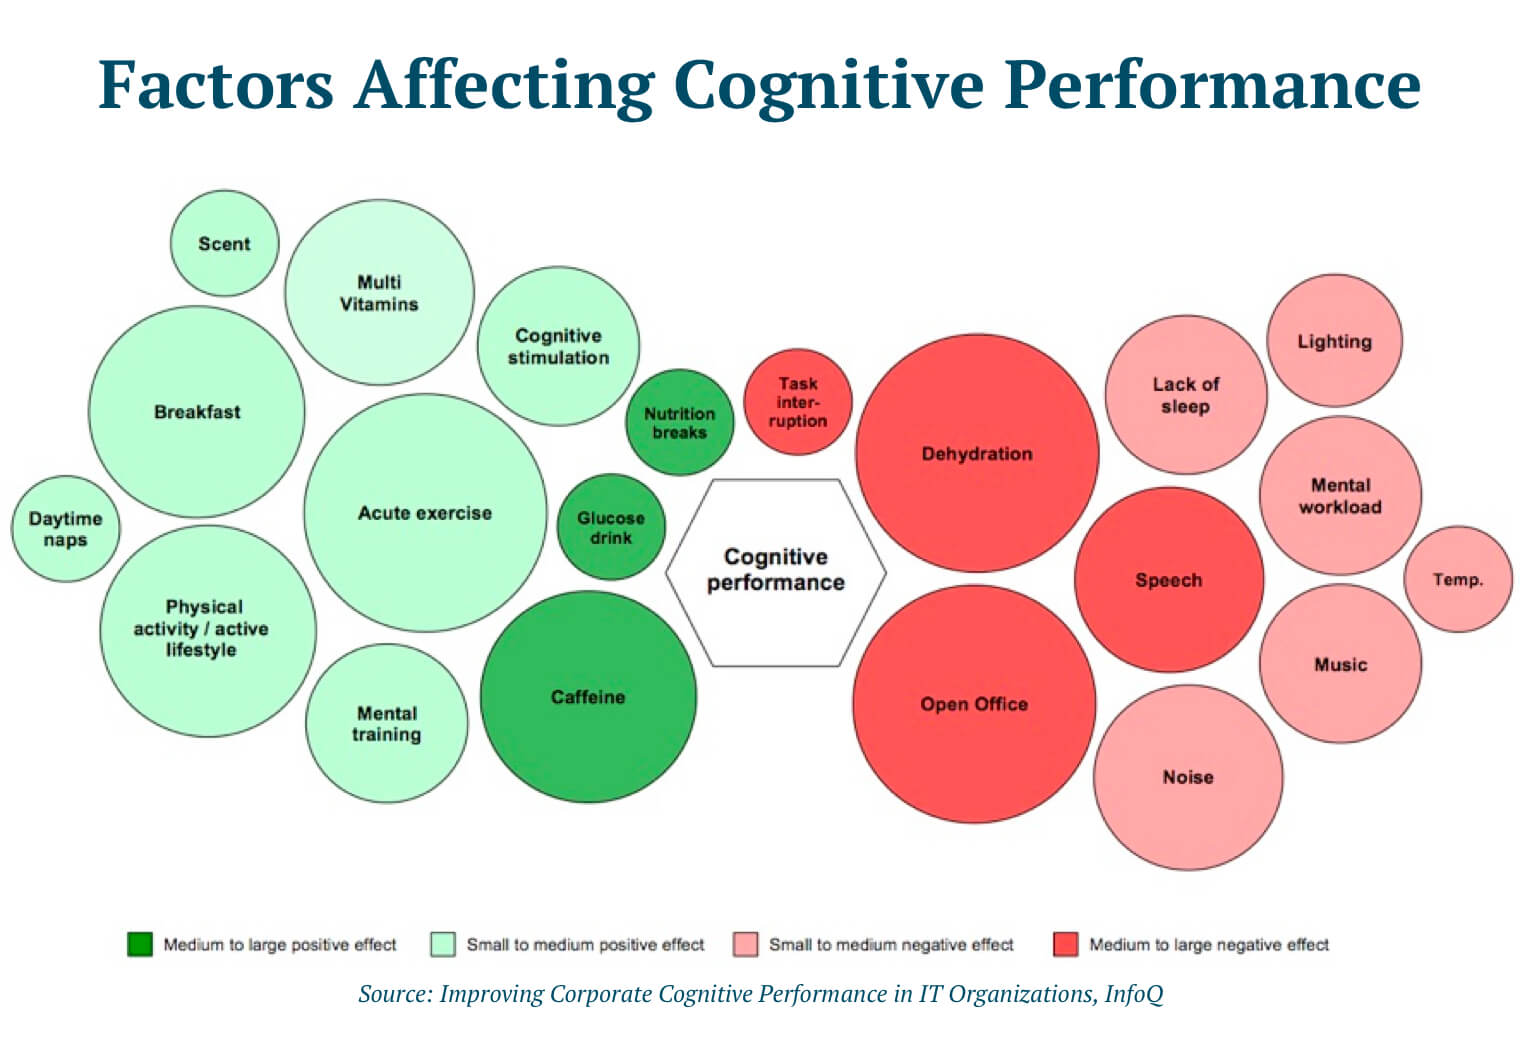 A chart illustrating the many factors which can enhance or impair cognitive performance throughout your day. Beneficial factors grouped from greatest impact to least  include: Caffeine or glucose consumption, nutrition breaks, cognitive stimulation, acute exercise, multi-vitamins, mental training, physically active lifestyle, breakfast, scents, and daytime naps. Negative factors grouped from greatest impact to least include task interruptions, dehydration, open offices, speech, noise, lack of sleep, lighting, mental workload, music, noise and temperature.